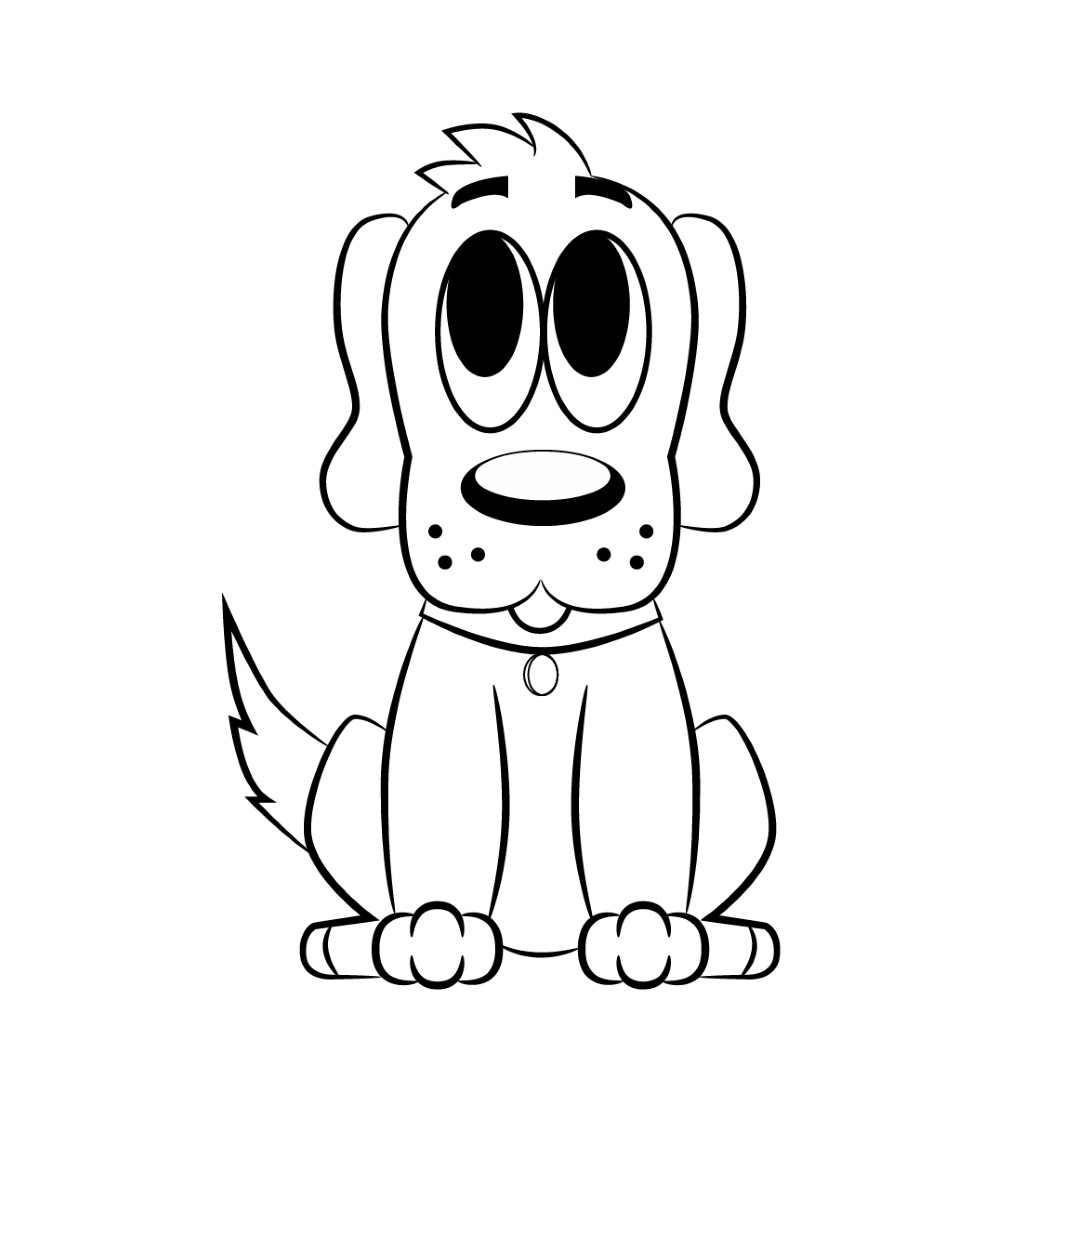 1080x1239 Pug Drawing Toon For Free Download